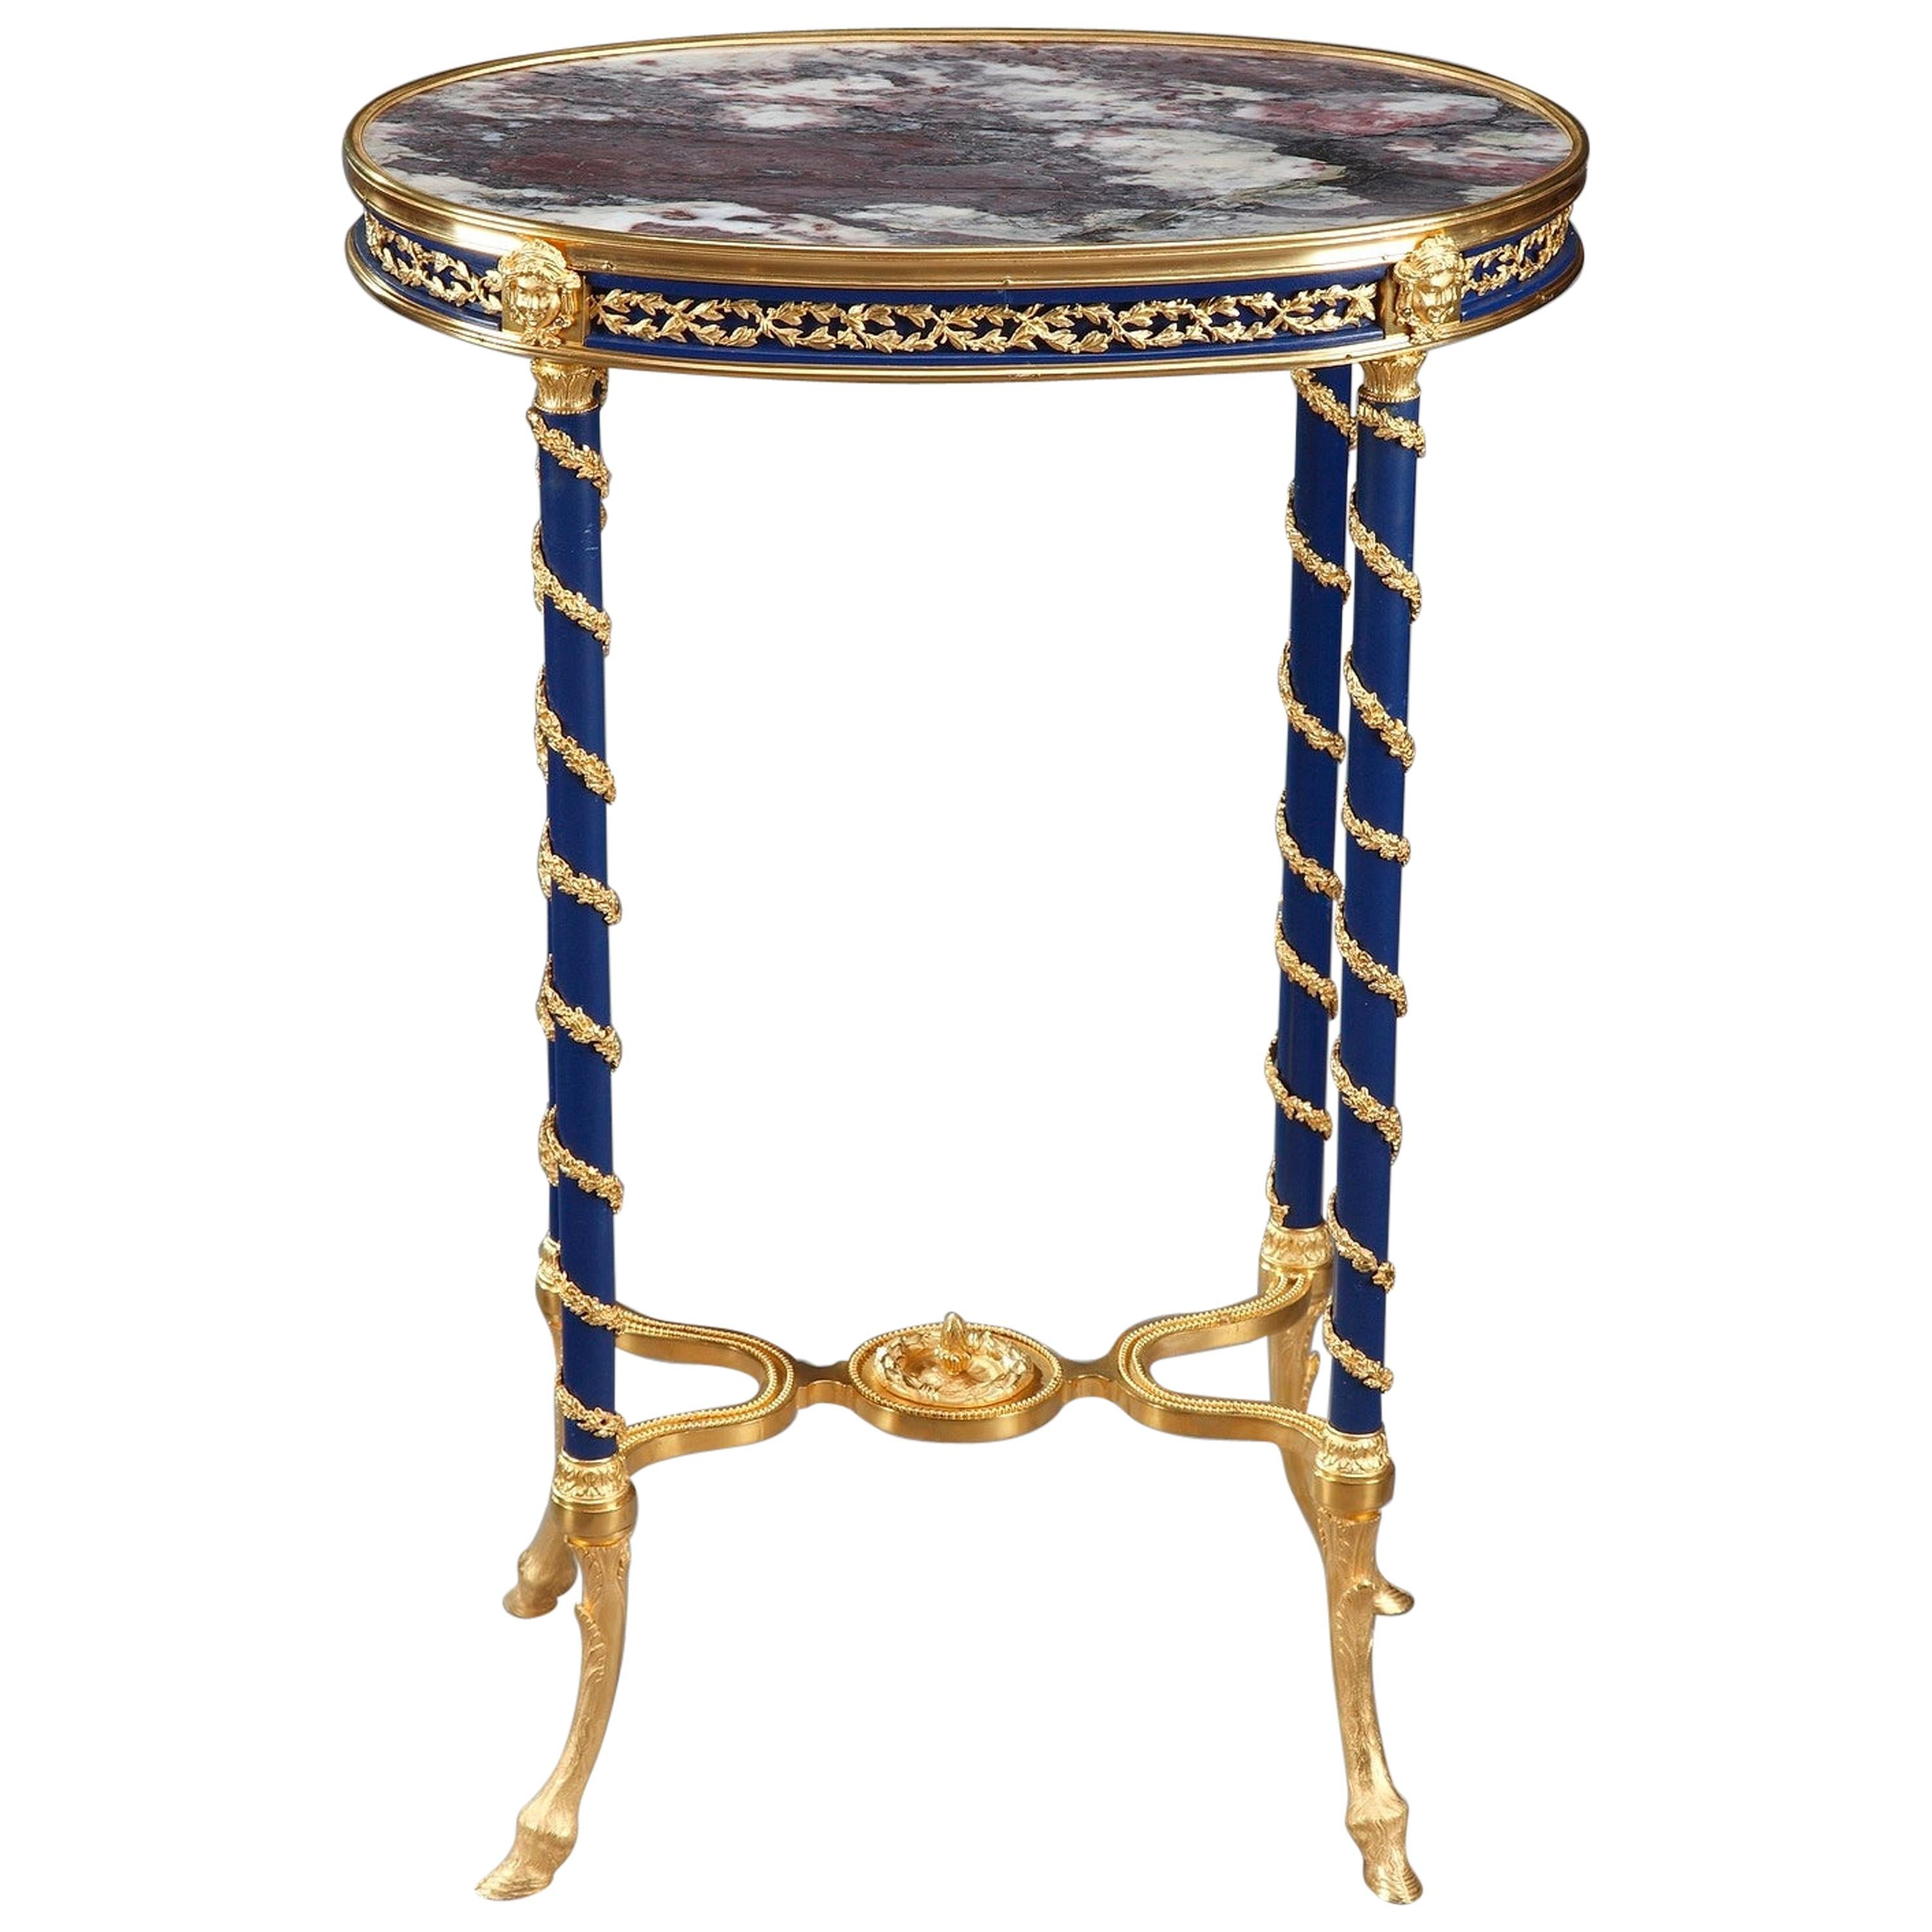 19th Century Bronze and Marble Gueridon Table